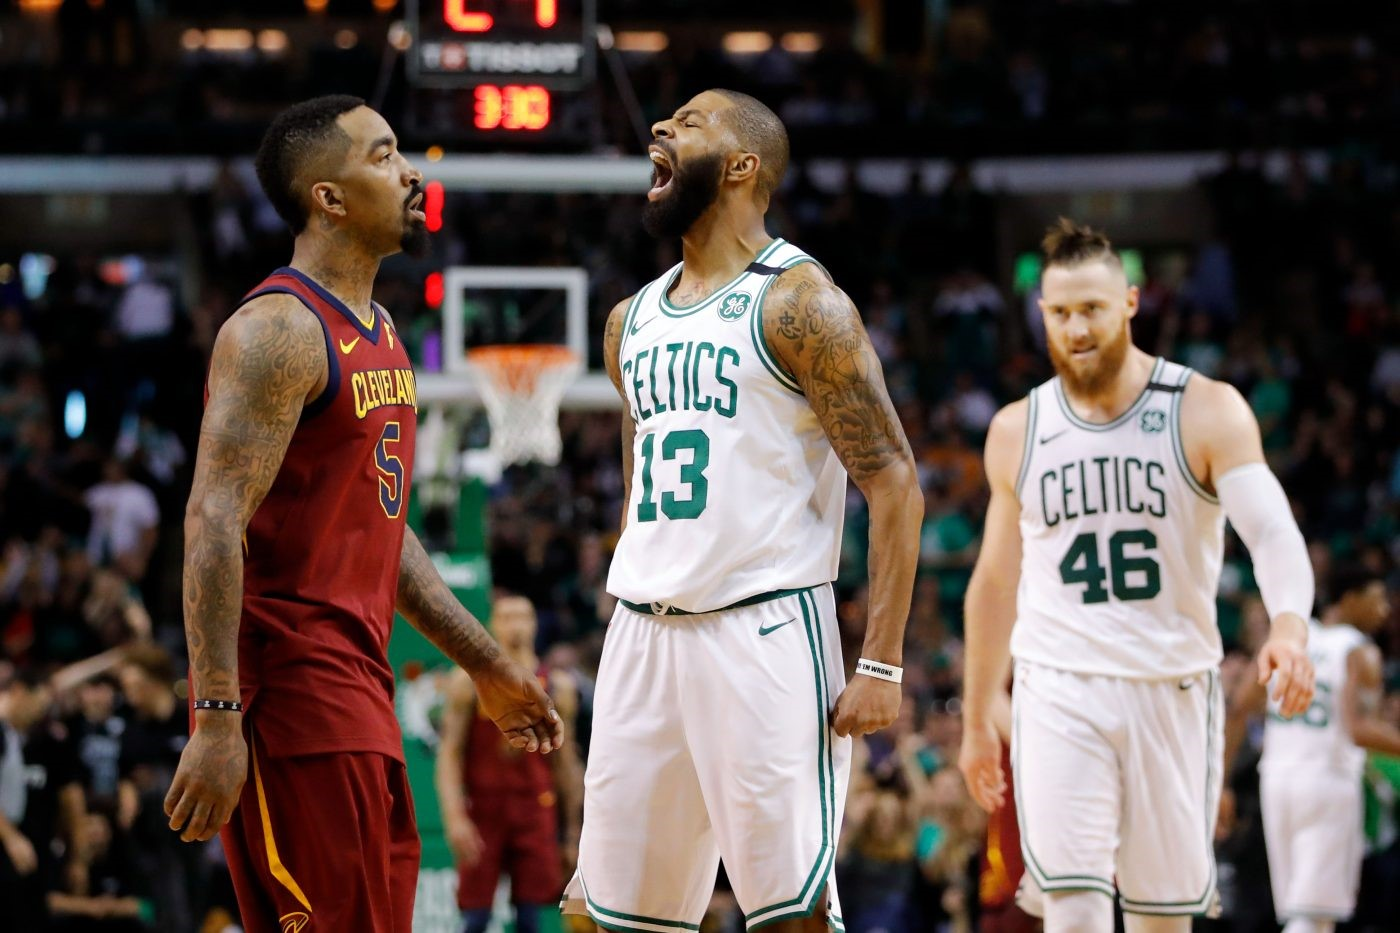 Day 27 of The NBA Playoffs: Celtics Rout Cavs With Big First Quarter Run